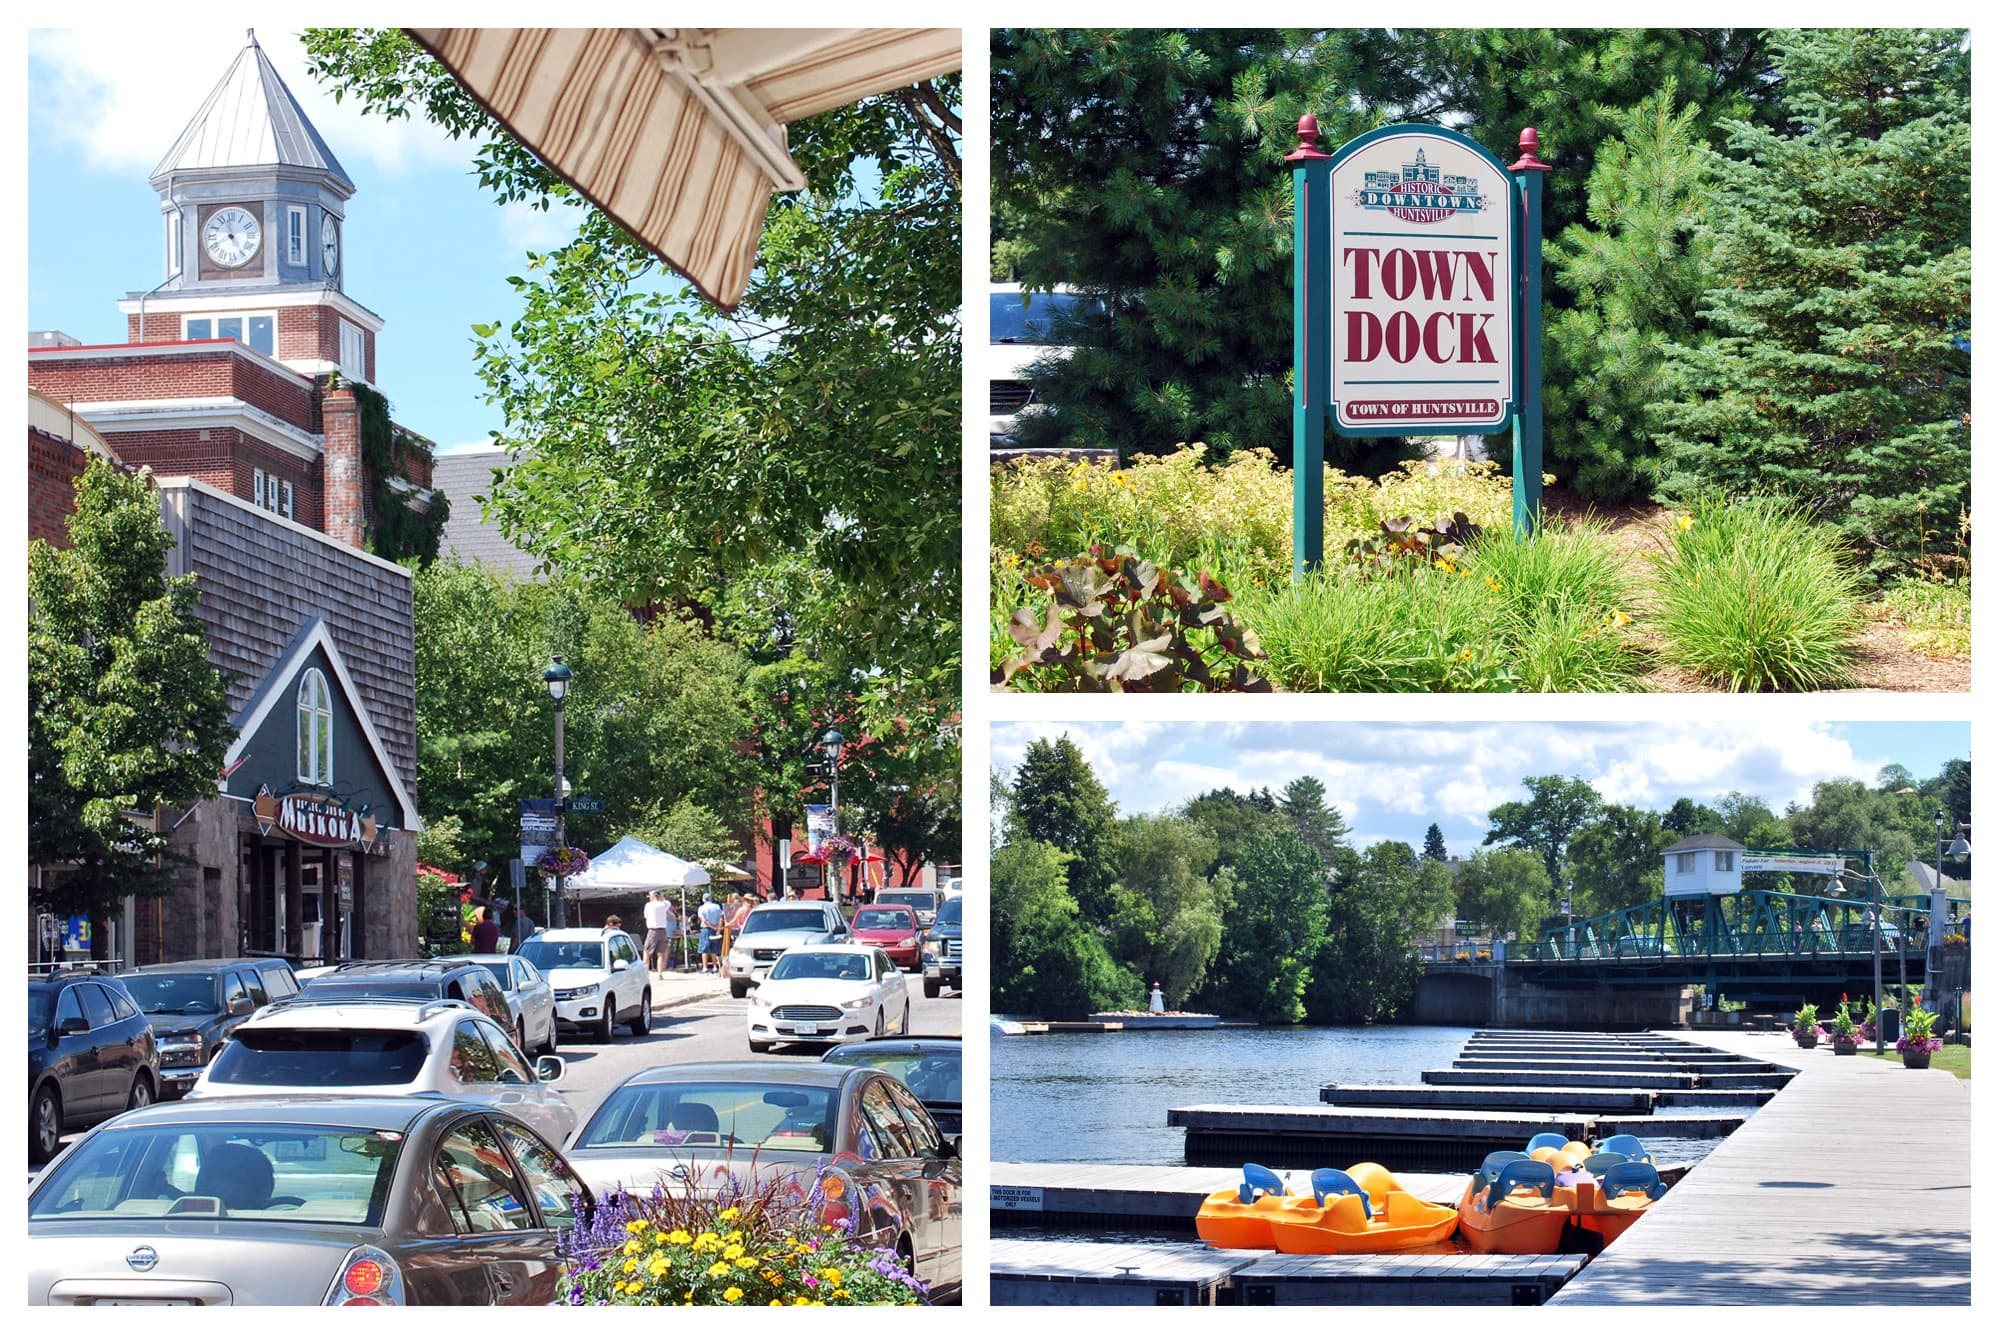 Views of Downtown Huntsville, Ontario, along with the boat dock